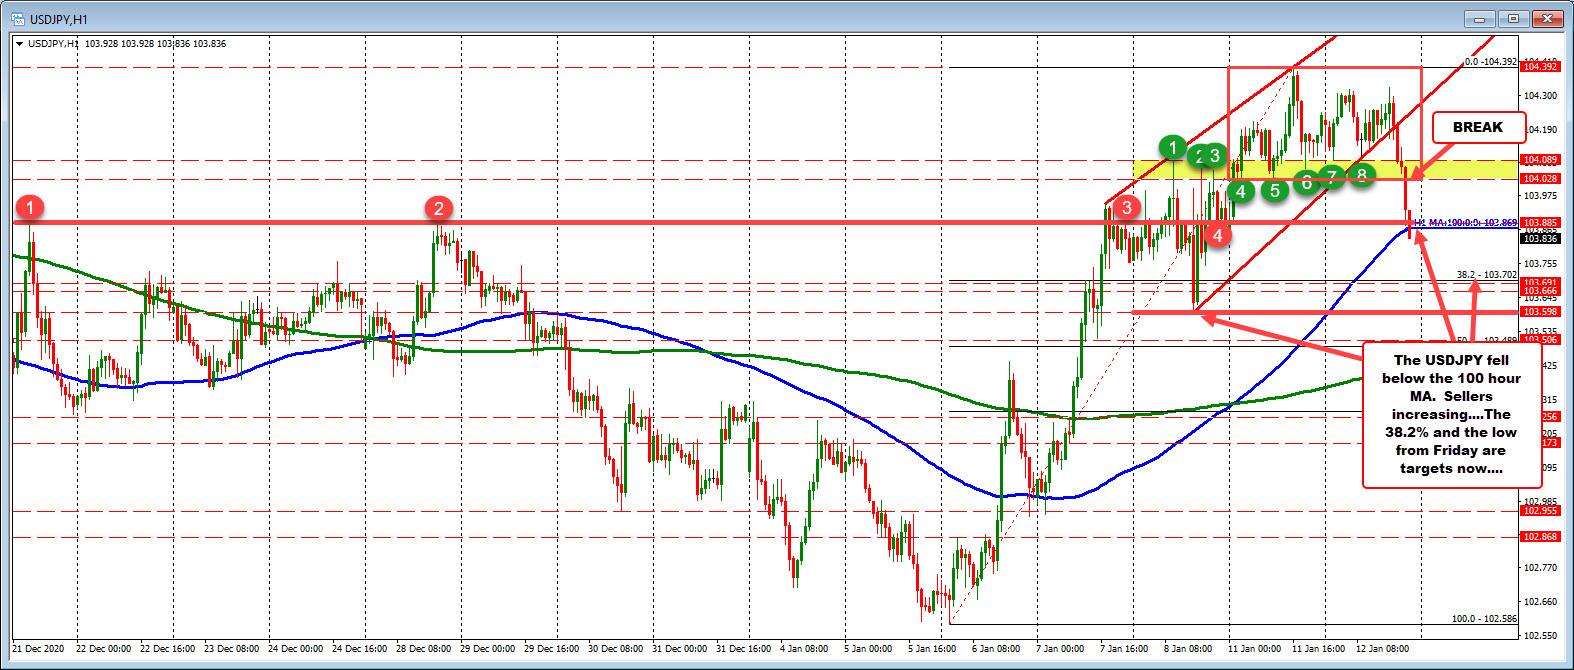 USDJPY falls to and below the 100 hour MA